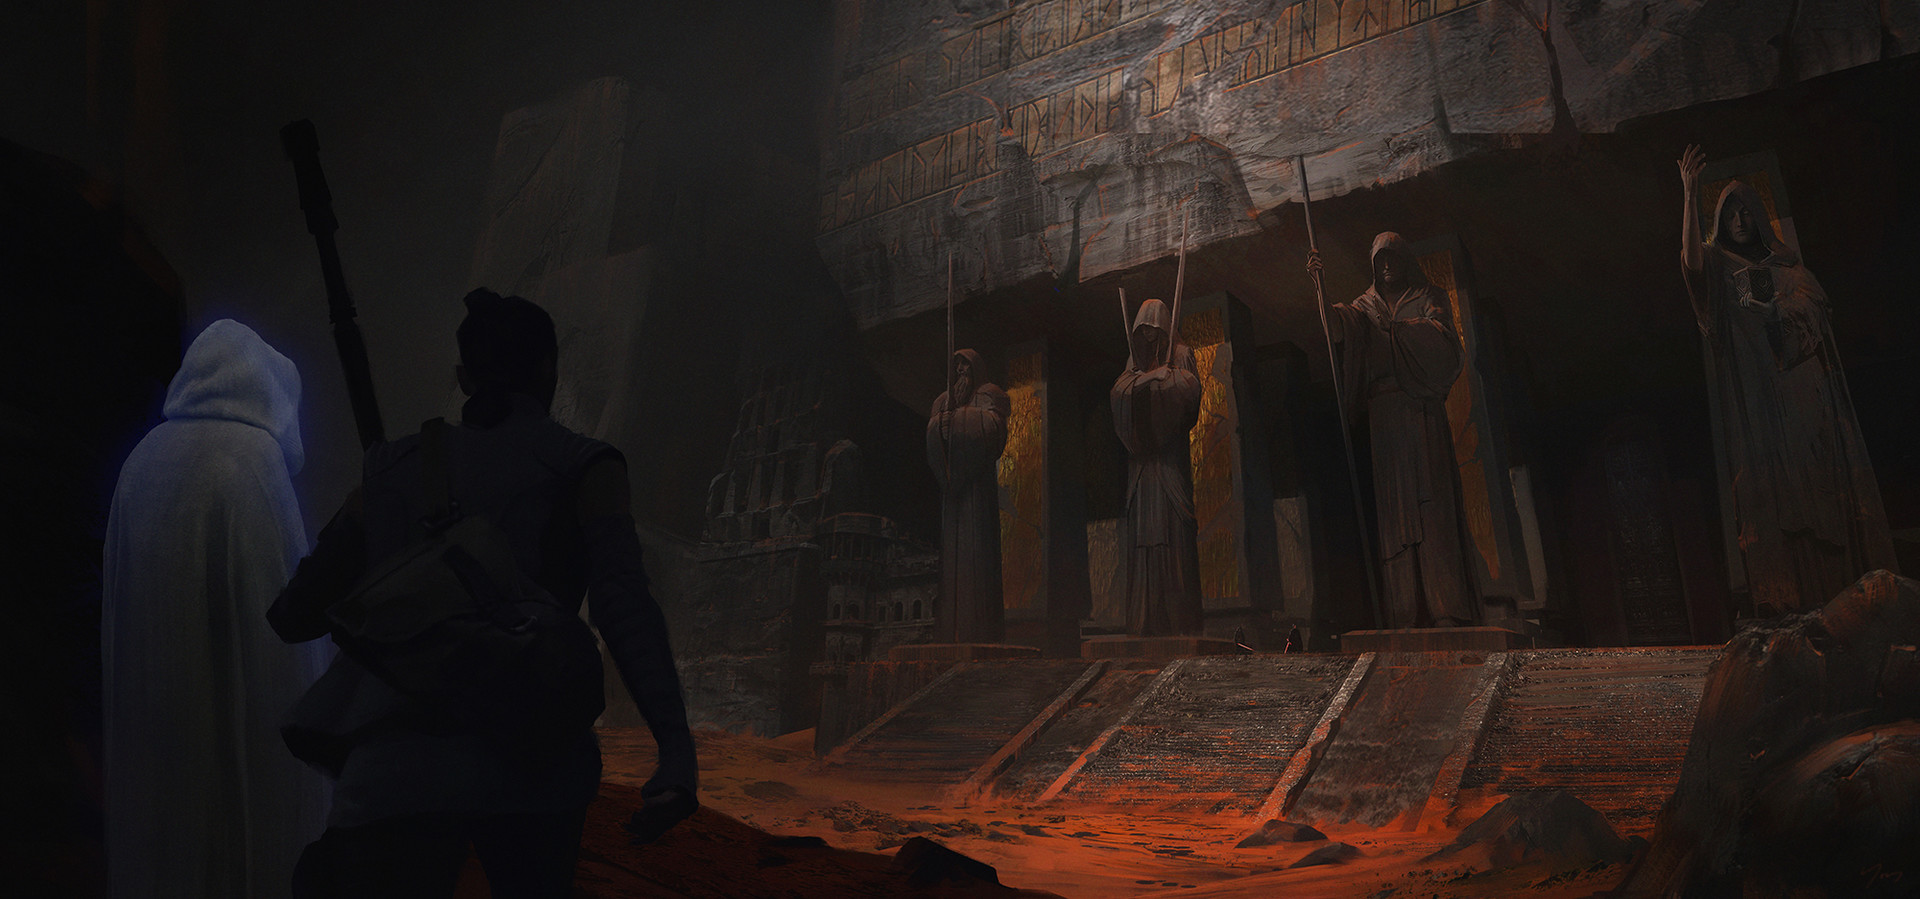 Fan art for Star Wars, confrontation at an ancient Jedi Temple